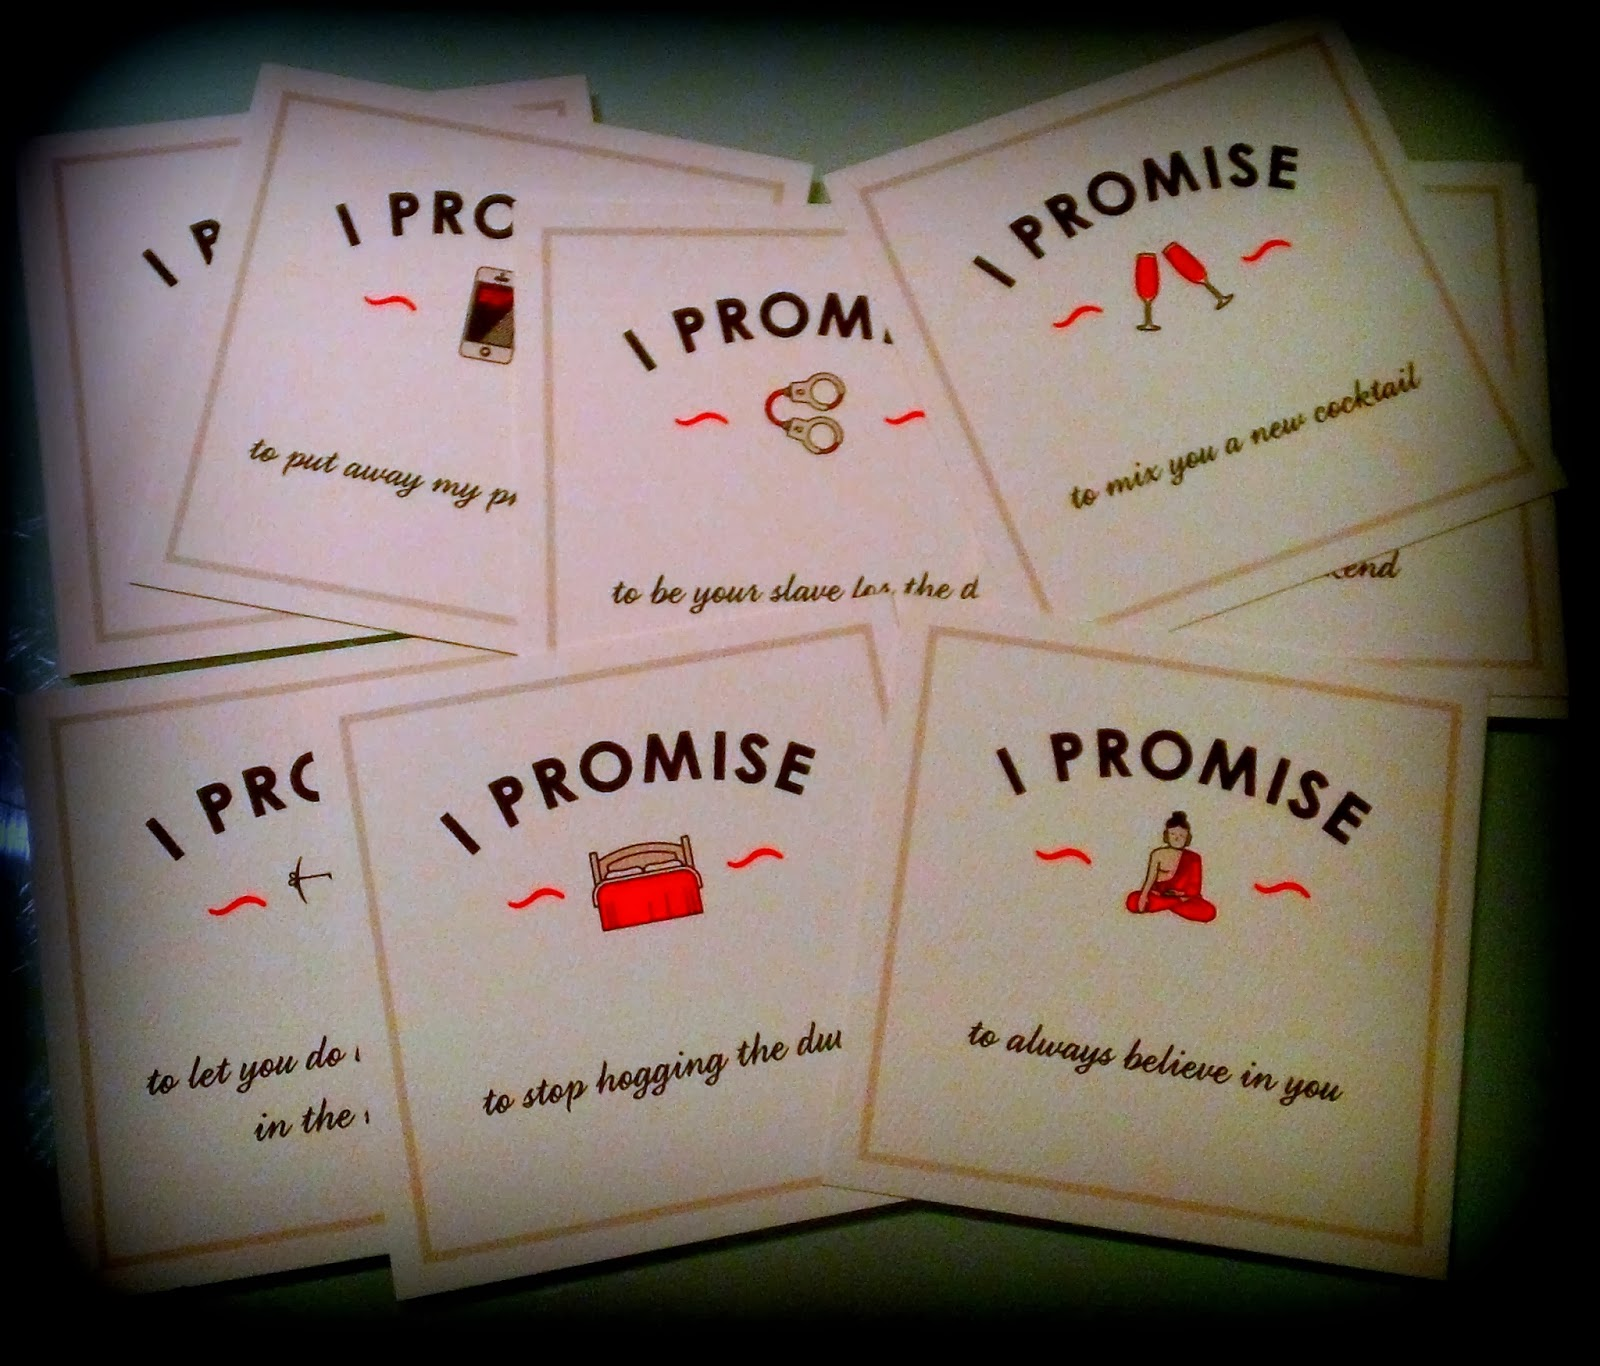 I Promise Cards, St Valentines Gifts, Valentine's Day, Presents for Women, Unusual Wedding Proposals, Cards